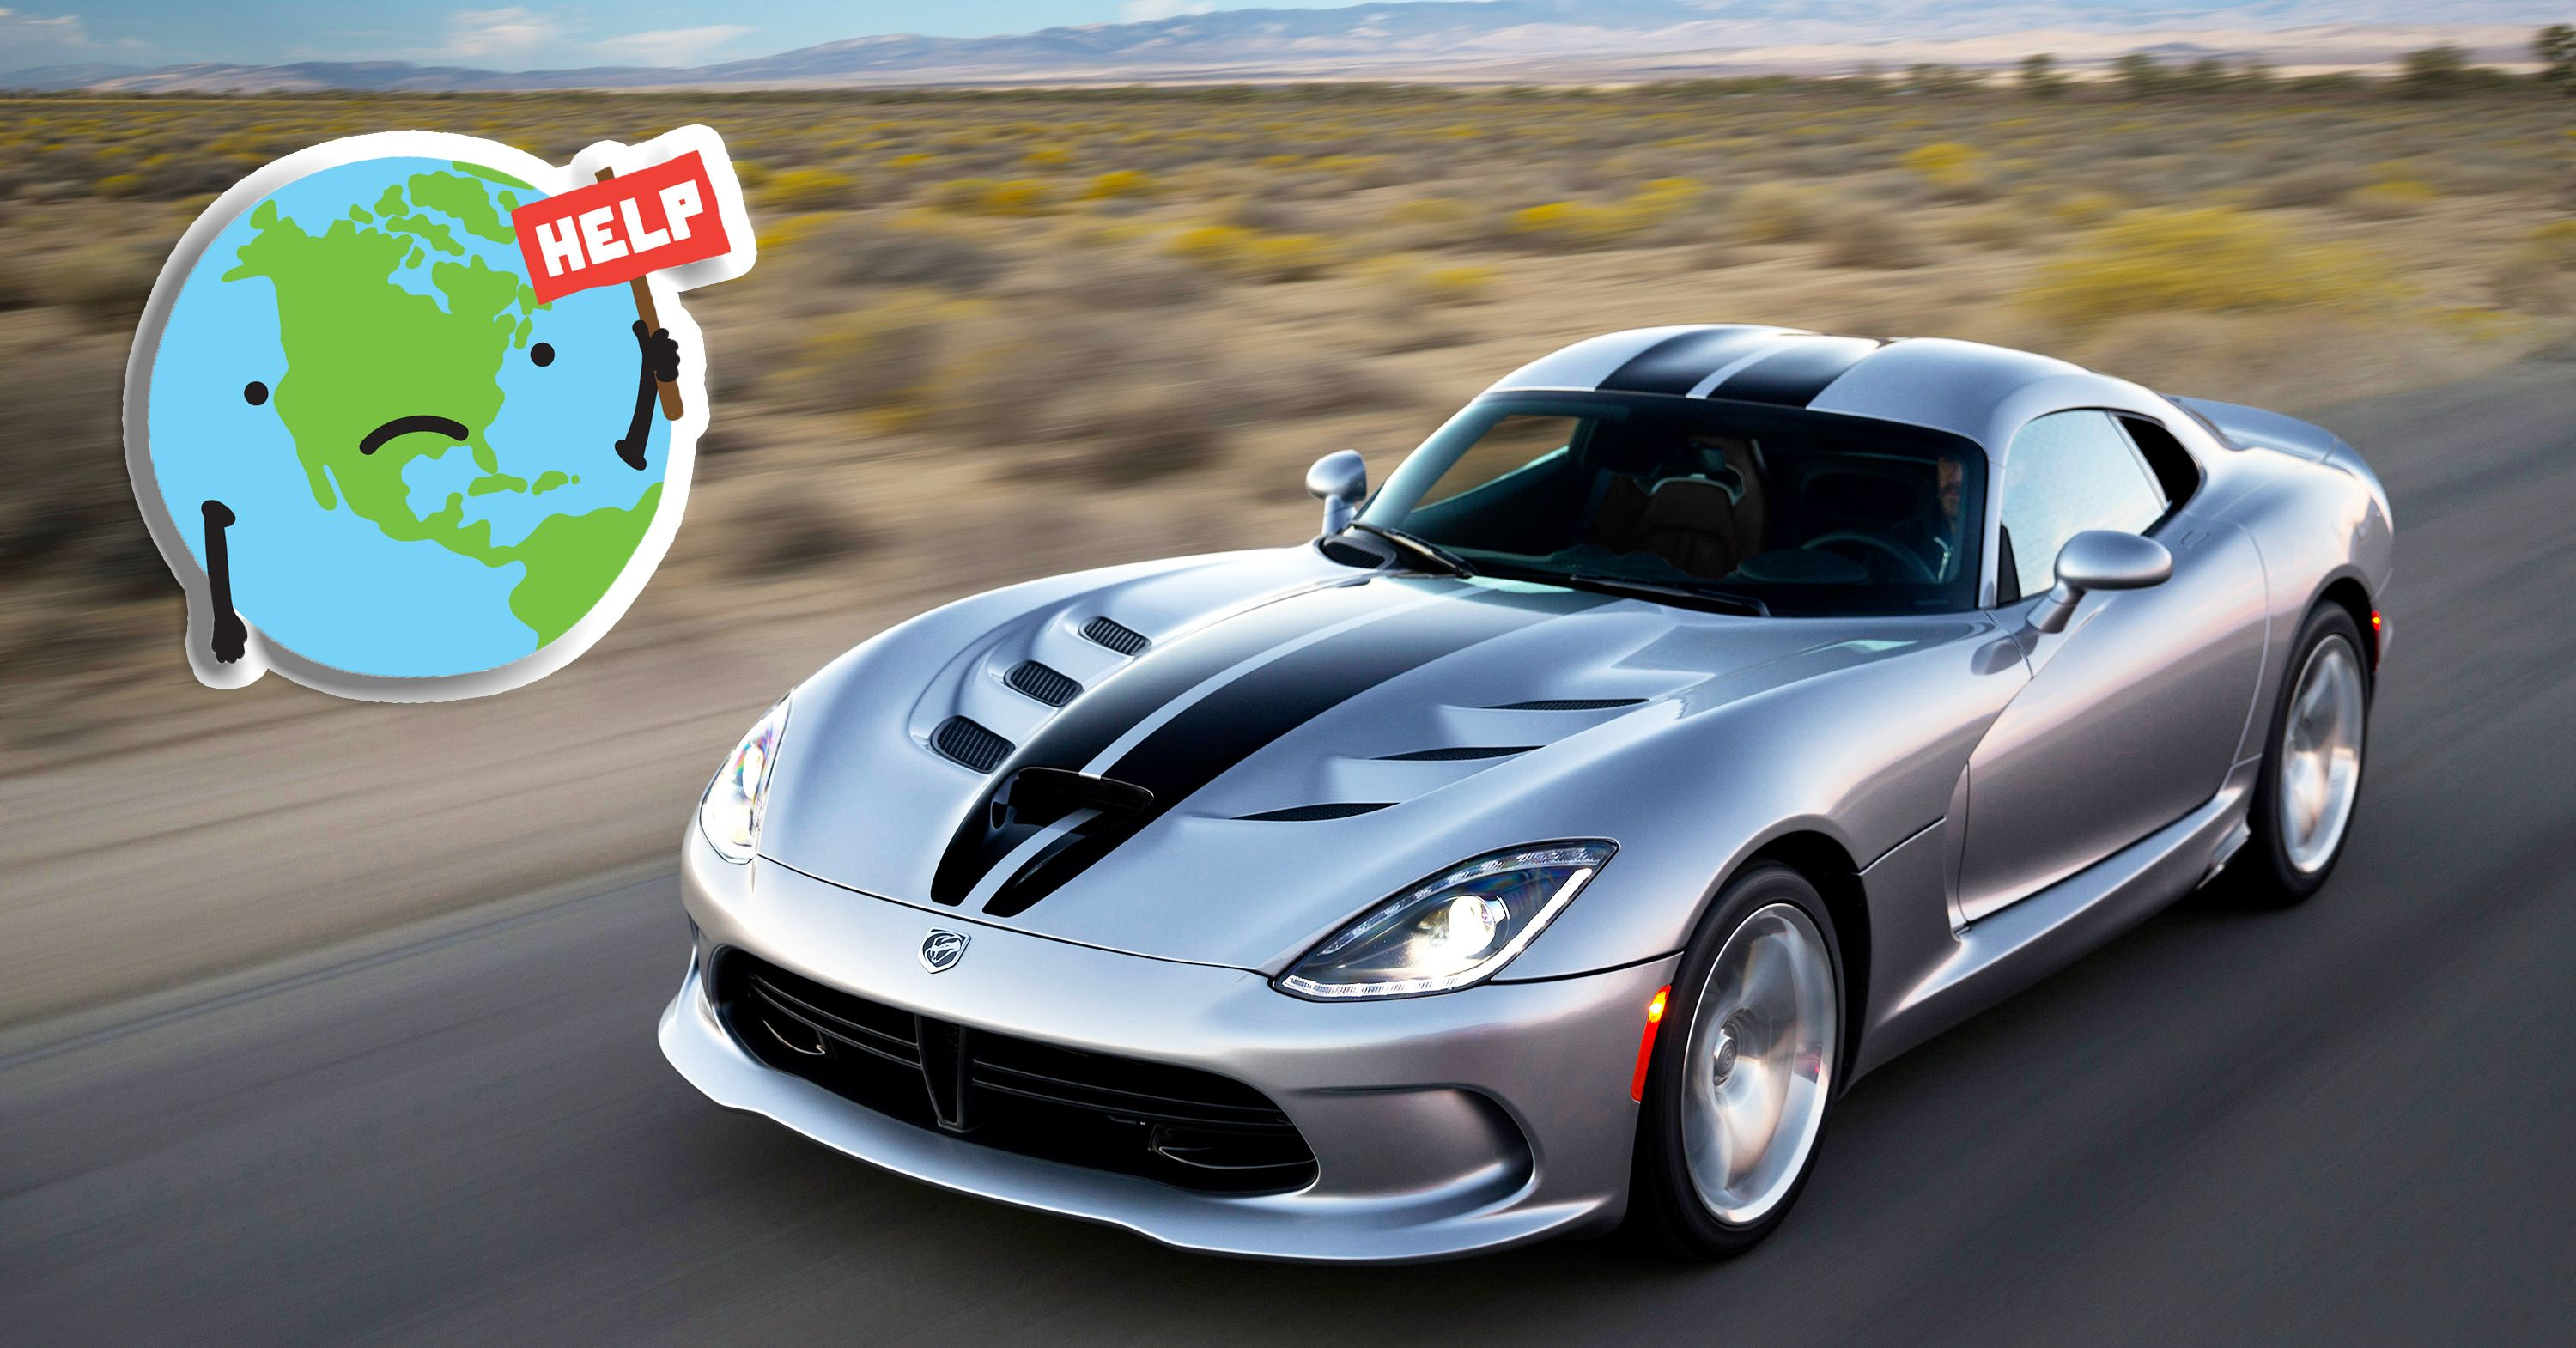 Awesome 10 Sports Cars With The Best MPG (10 That Leave Wallets Empty)